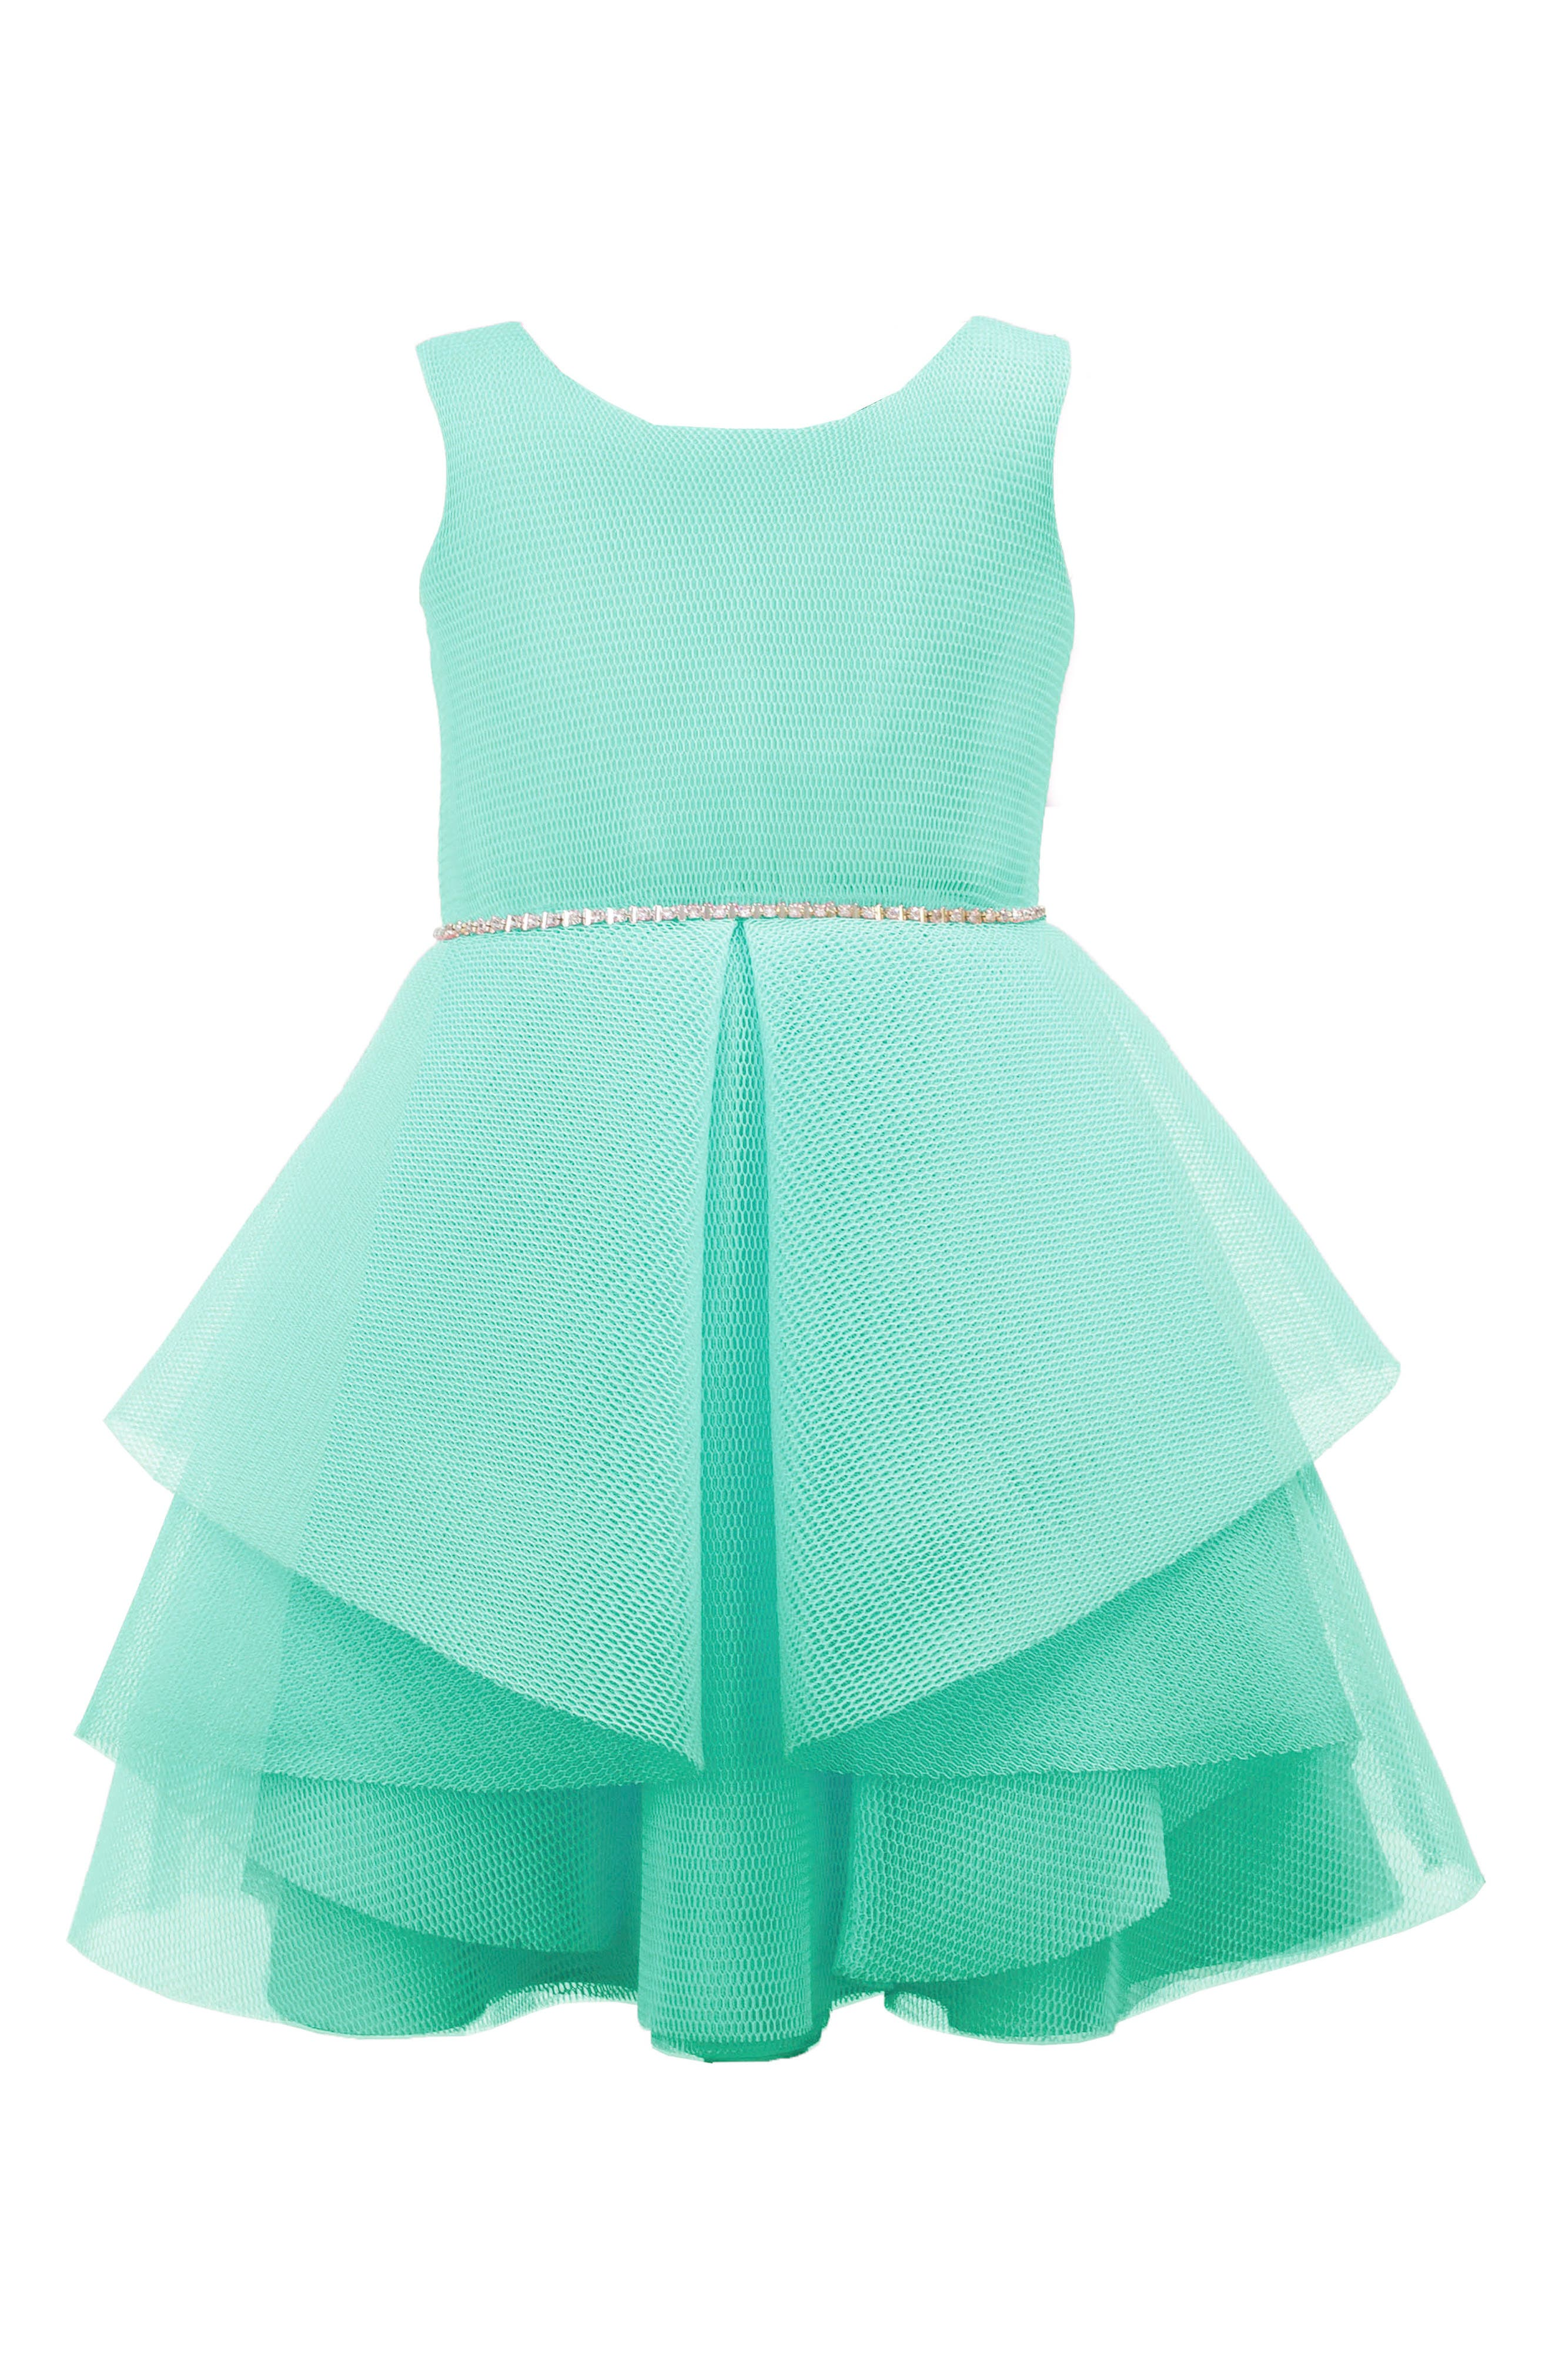 Techno Mesh Fit & Flare Dress,                         Main,                         color, Turquoise